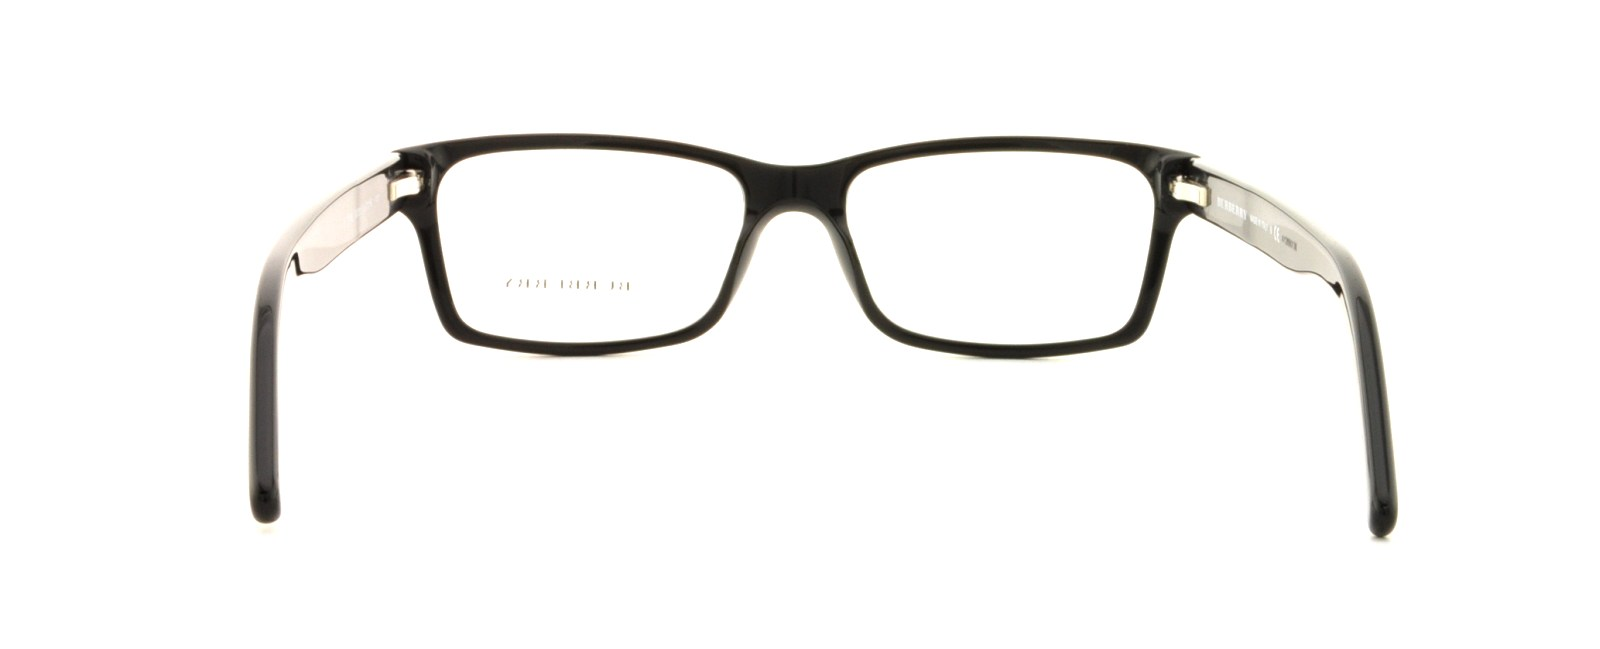 a08076ca771 Designer Frames Outlet. Burberry BE2108